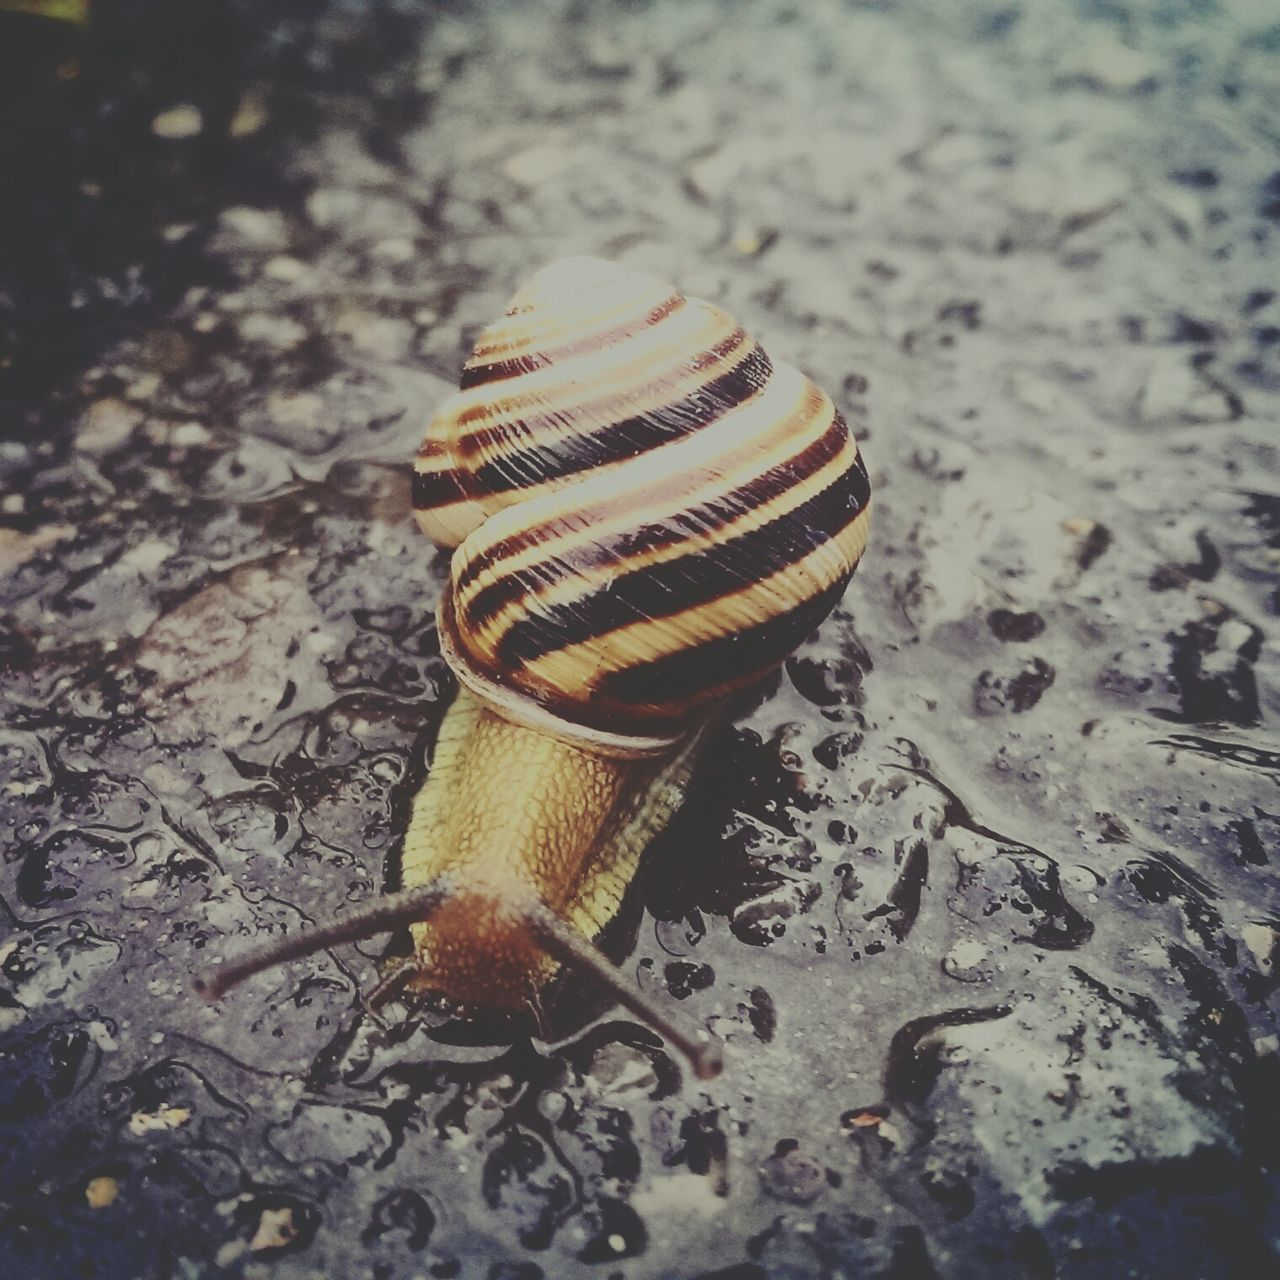 one animal, animal shell, snail, close-up, animal themes, no people, nature, animals in the wild, gastropod, spiral, day, outdoors, fragility